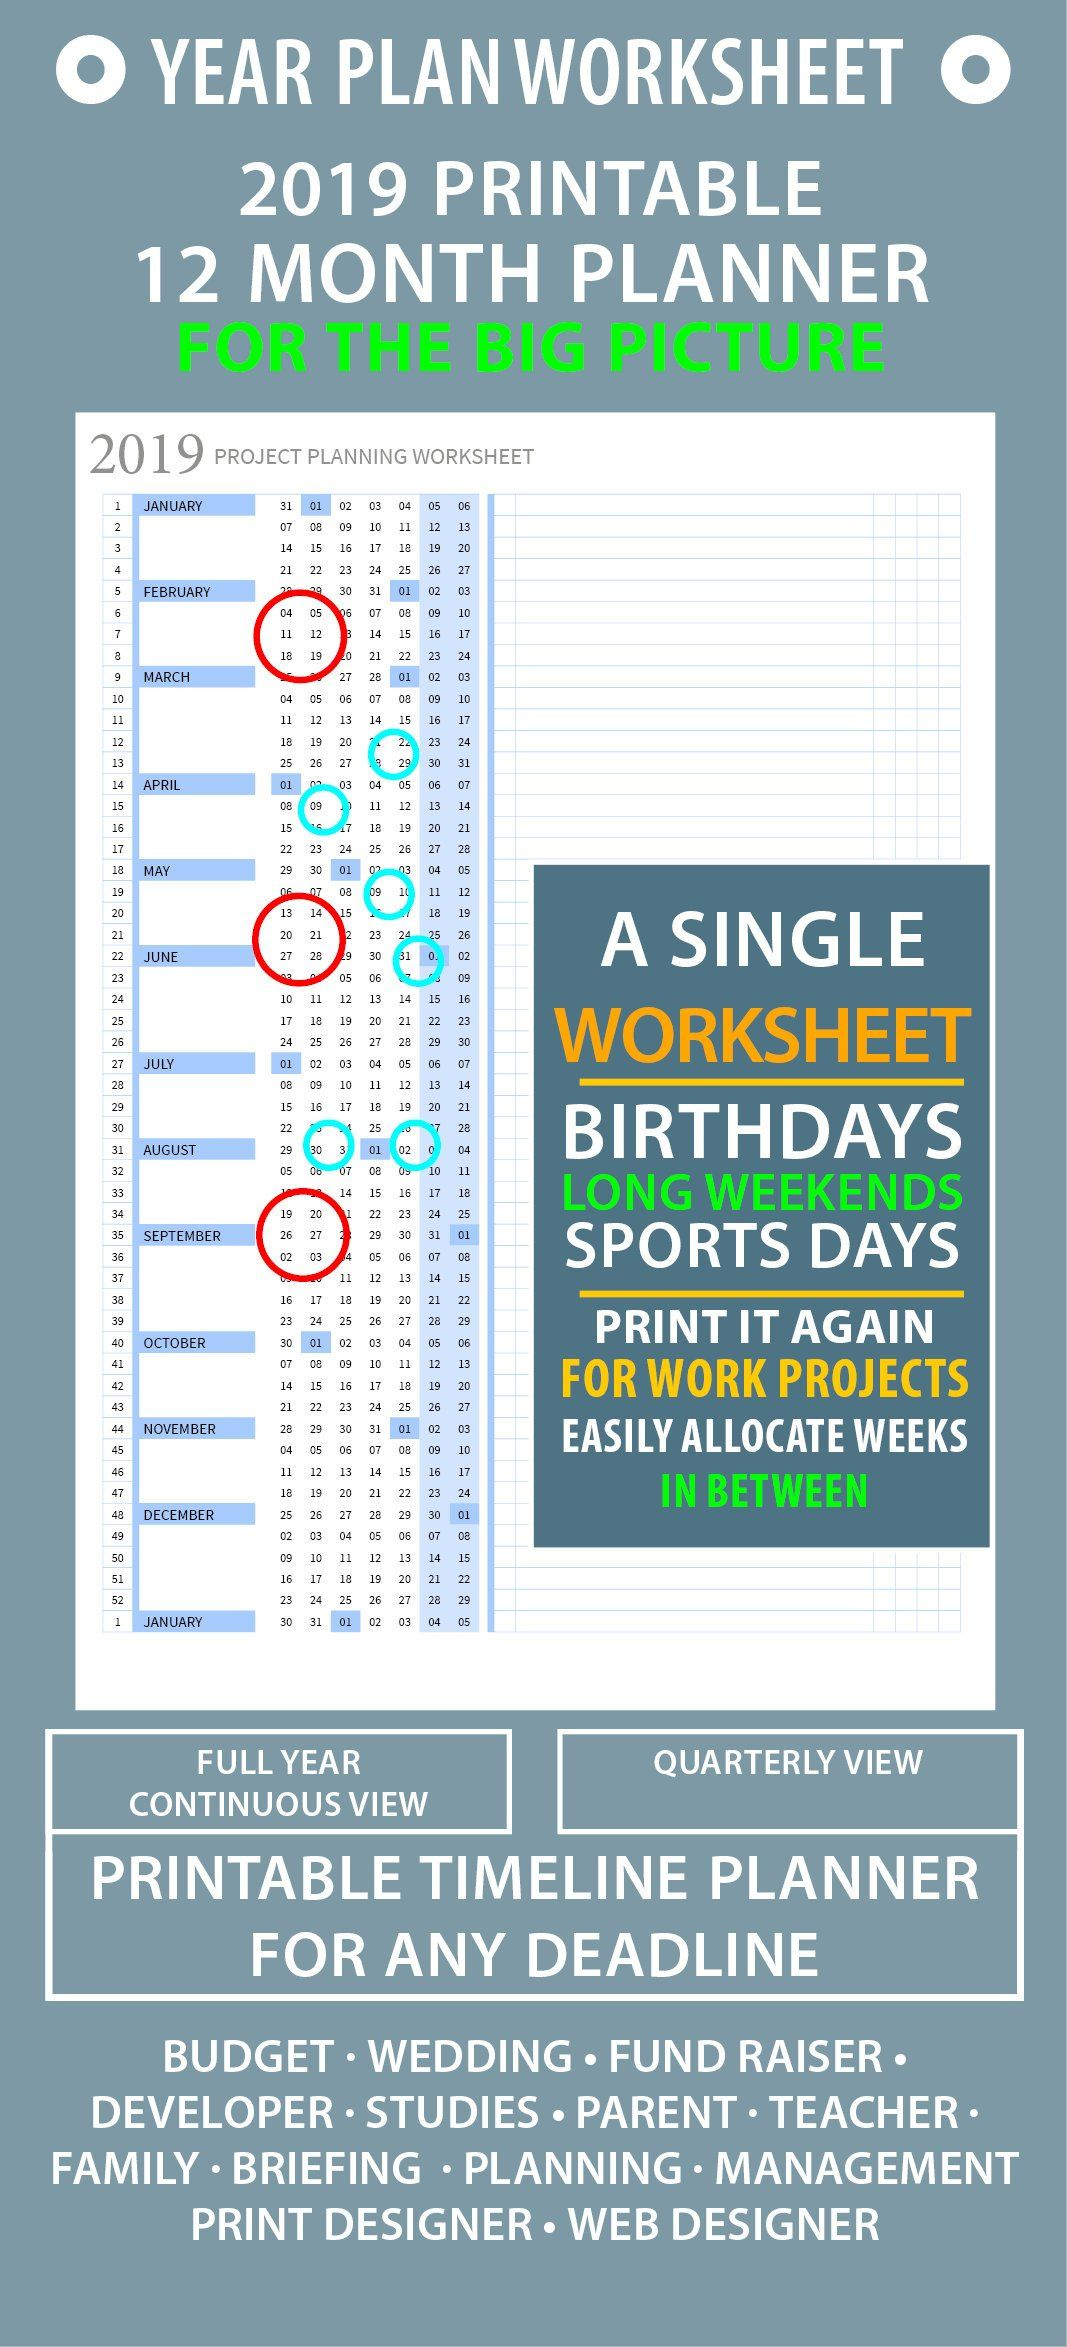 Full Year At A Glance Worksheet Printable Timeline